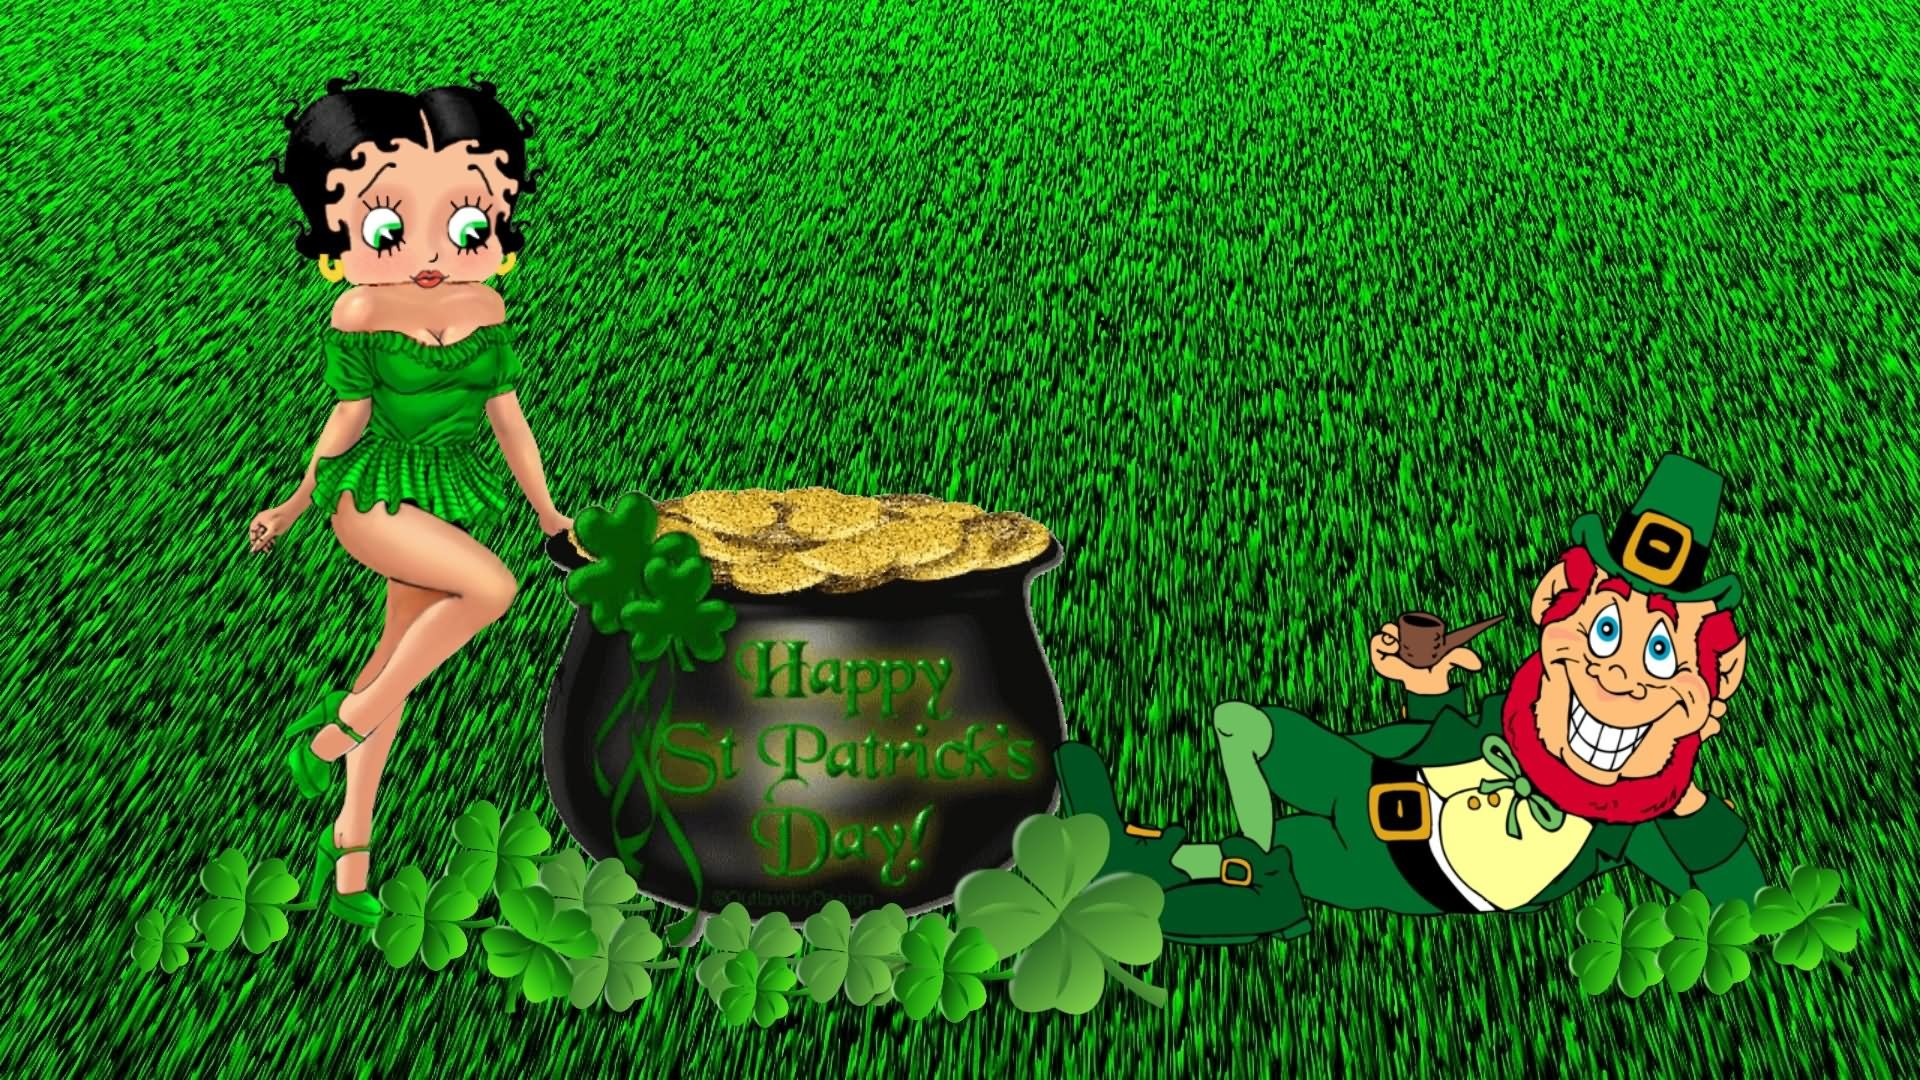 1920x1080 Betty Boop Wishes You Happy Saint Patrick's Day HD Wallpaper